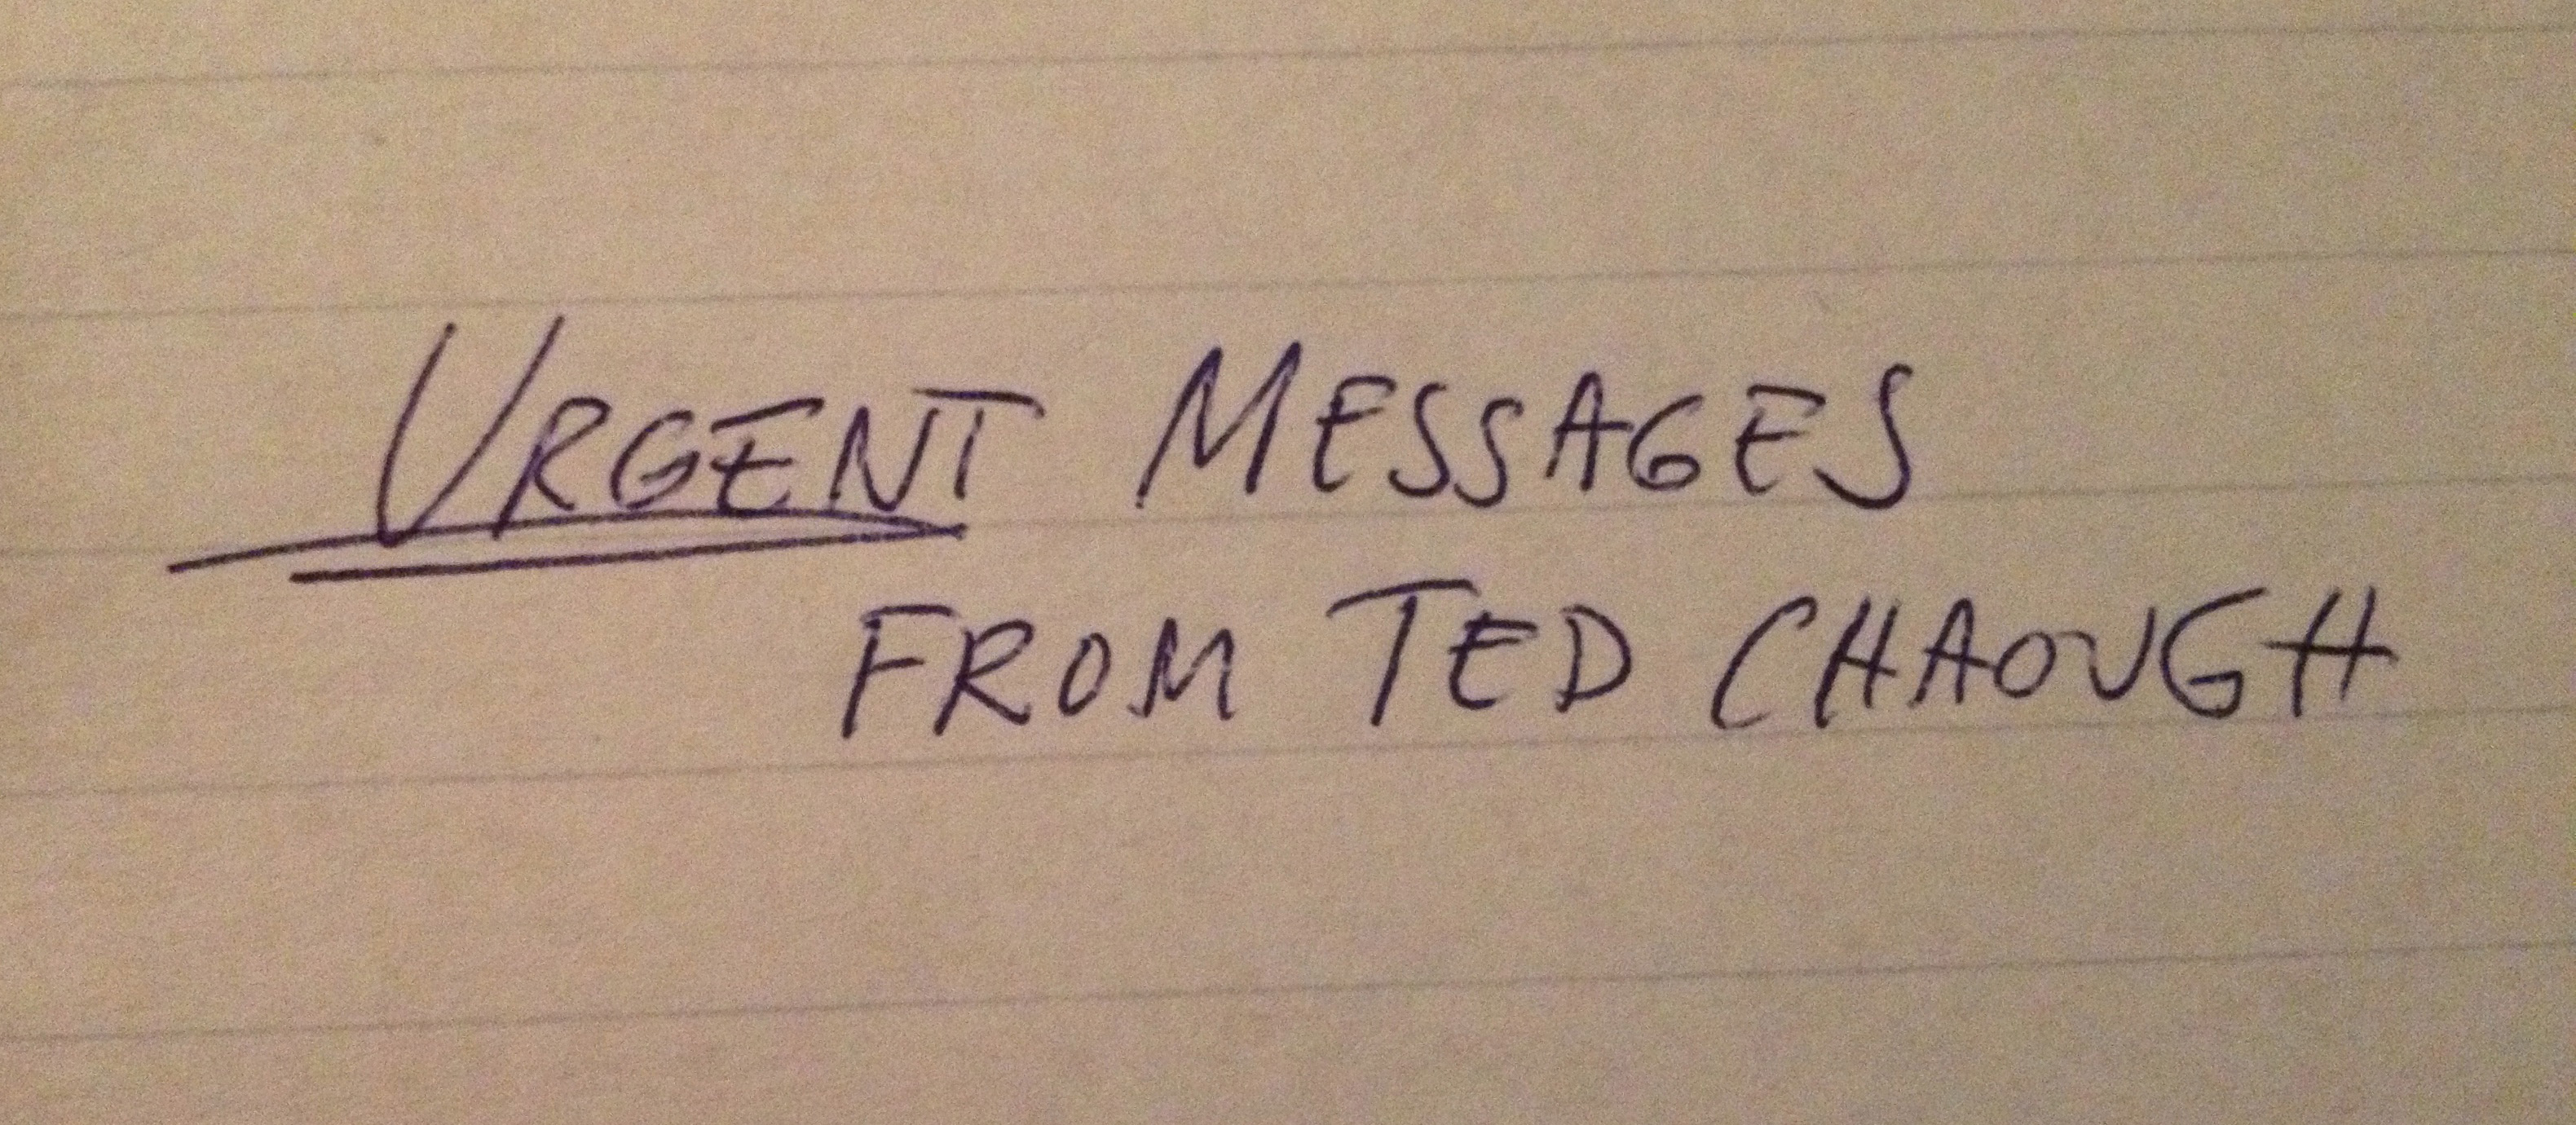 Urgent Messages From Ted Chaough